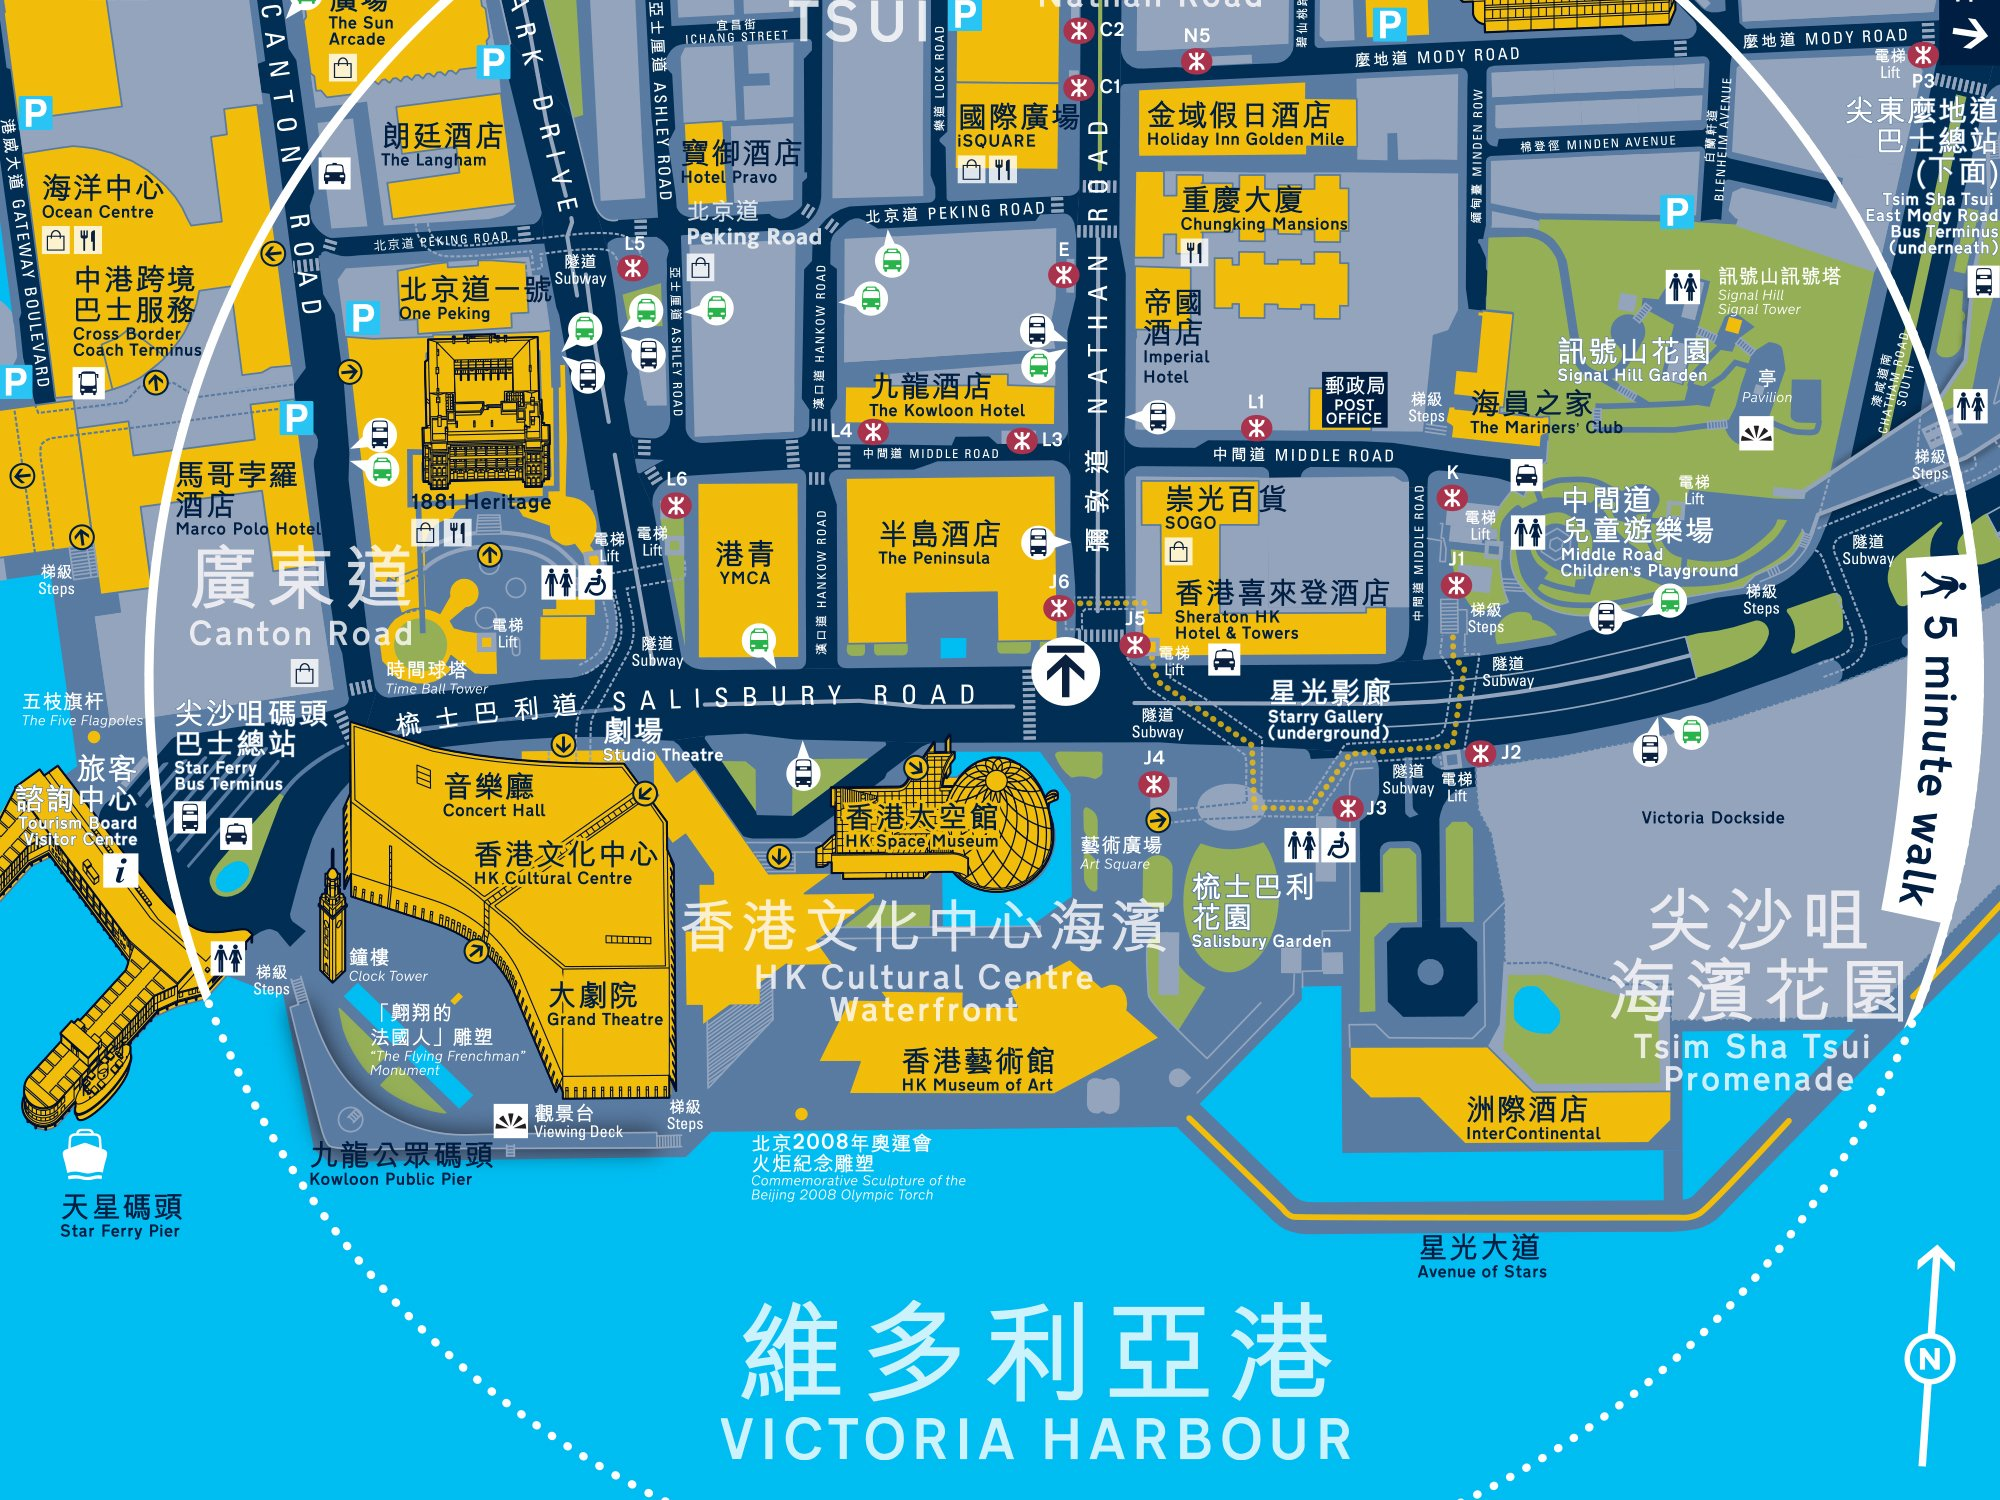 Hong Kong harbour map detail